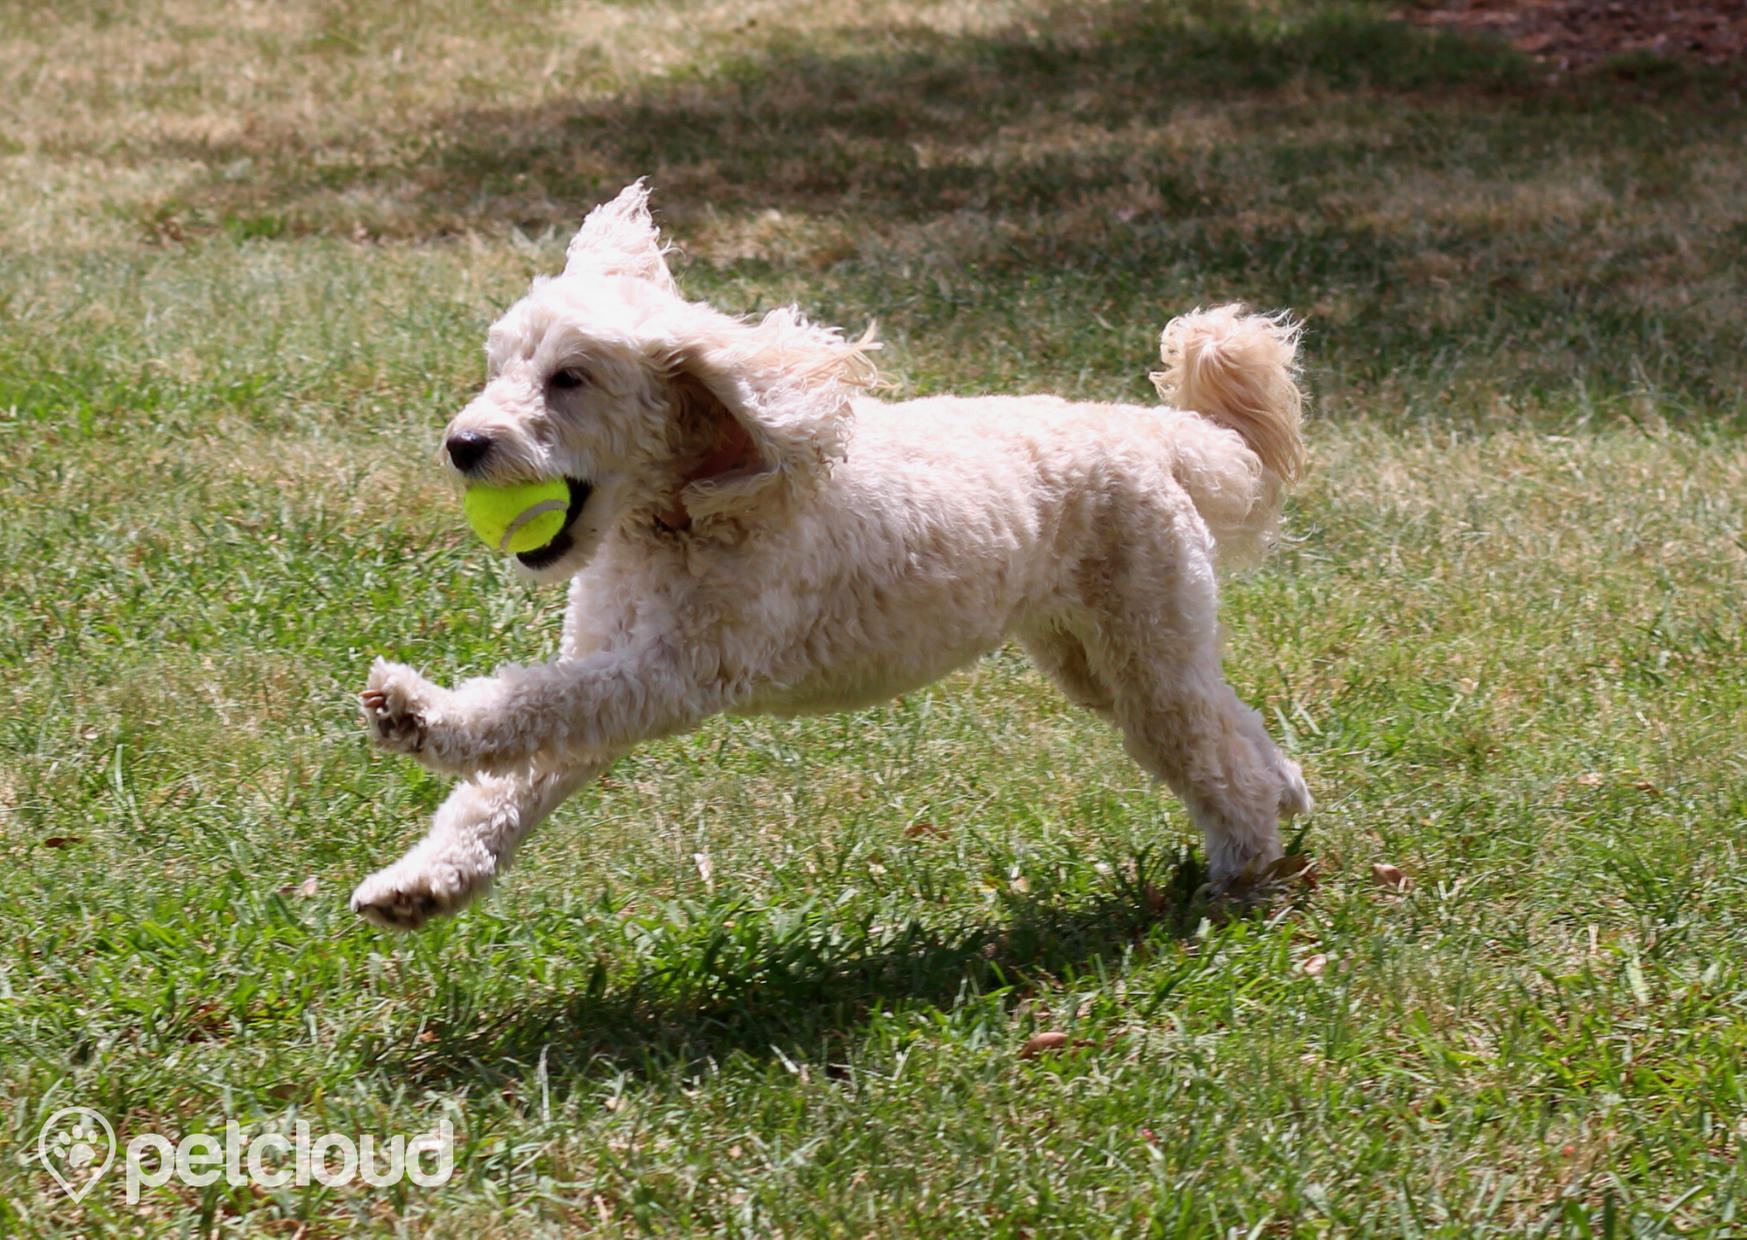 spoodle dog, mixed poodle breed, mixed spaniel breeds, furry white dog with ball in mouth